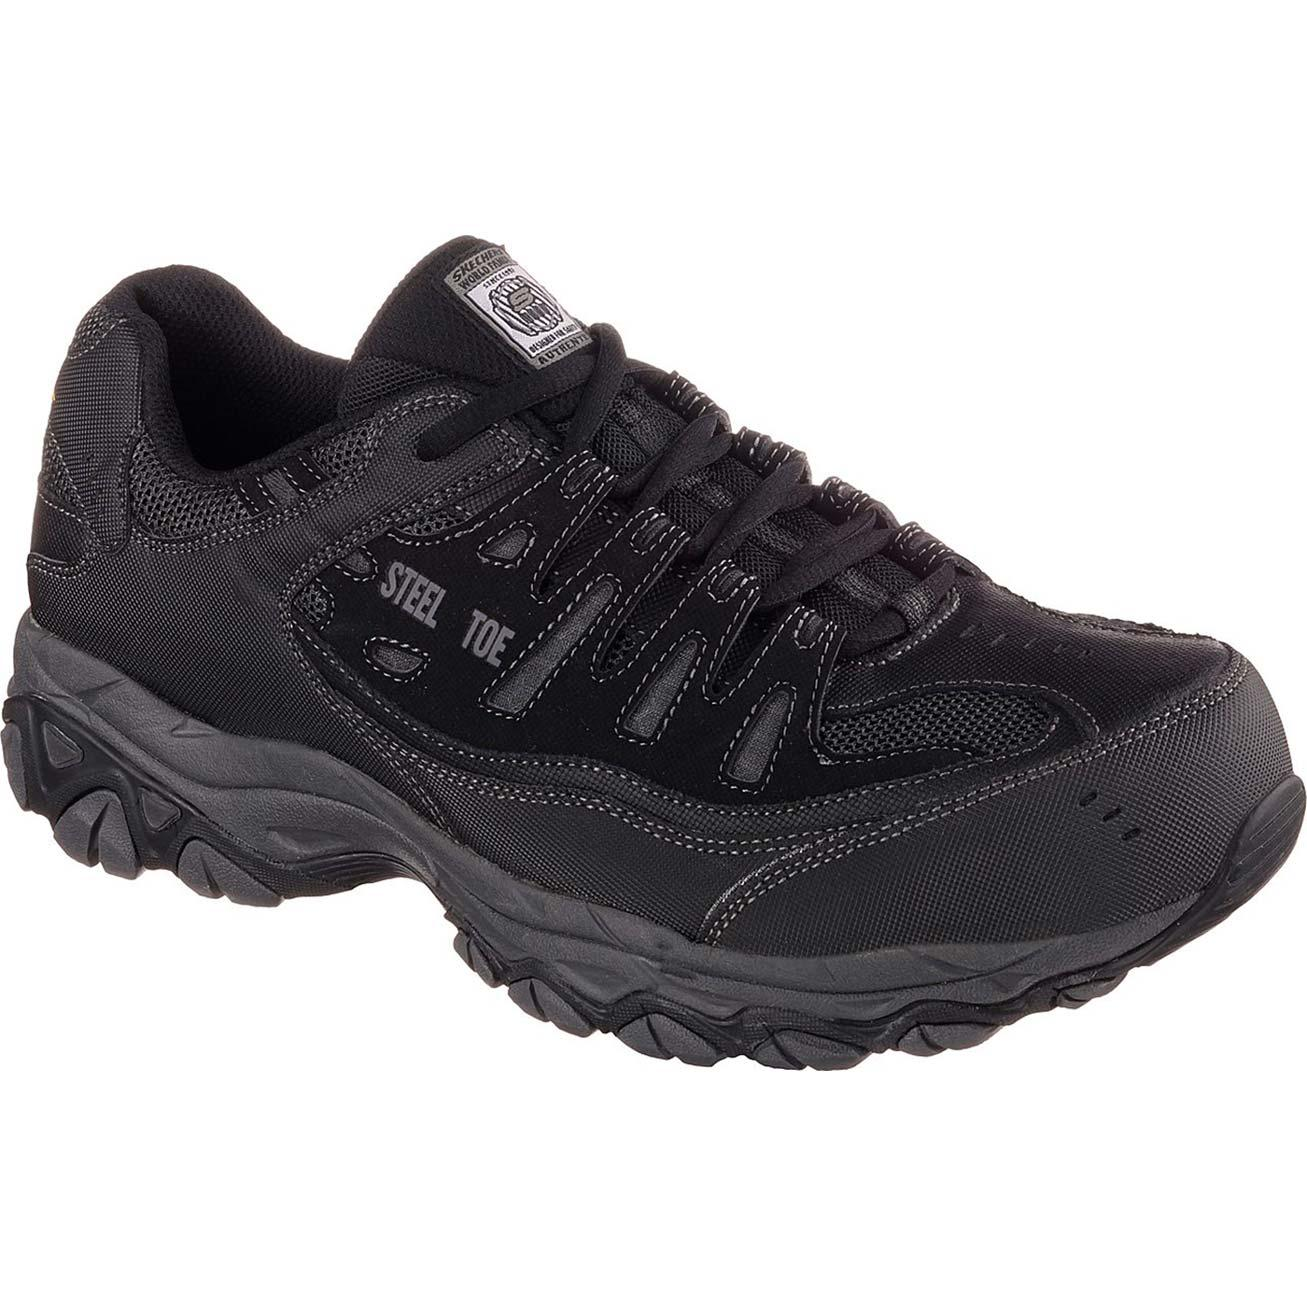 SKECHERS Work Relaxed Fit Crankton Steel Toe Work Athletic Shoe 77055BKCC